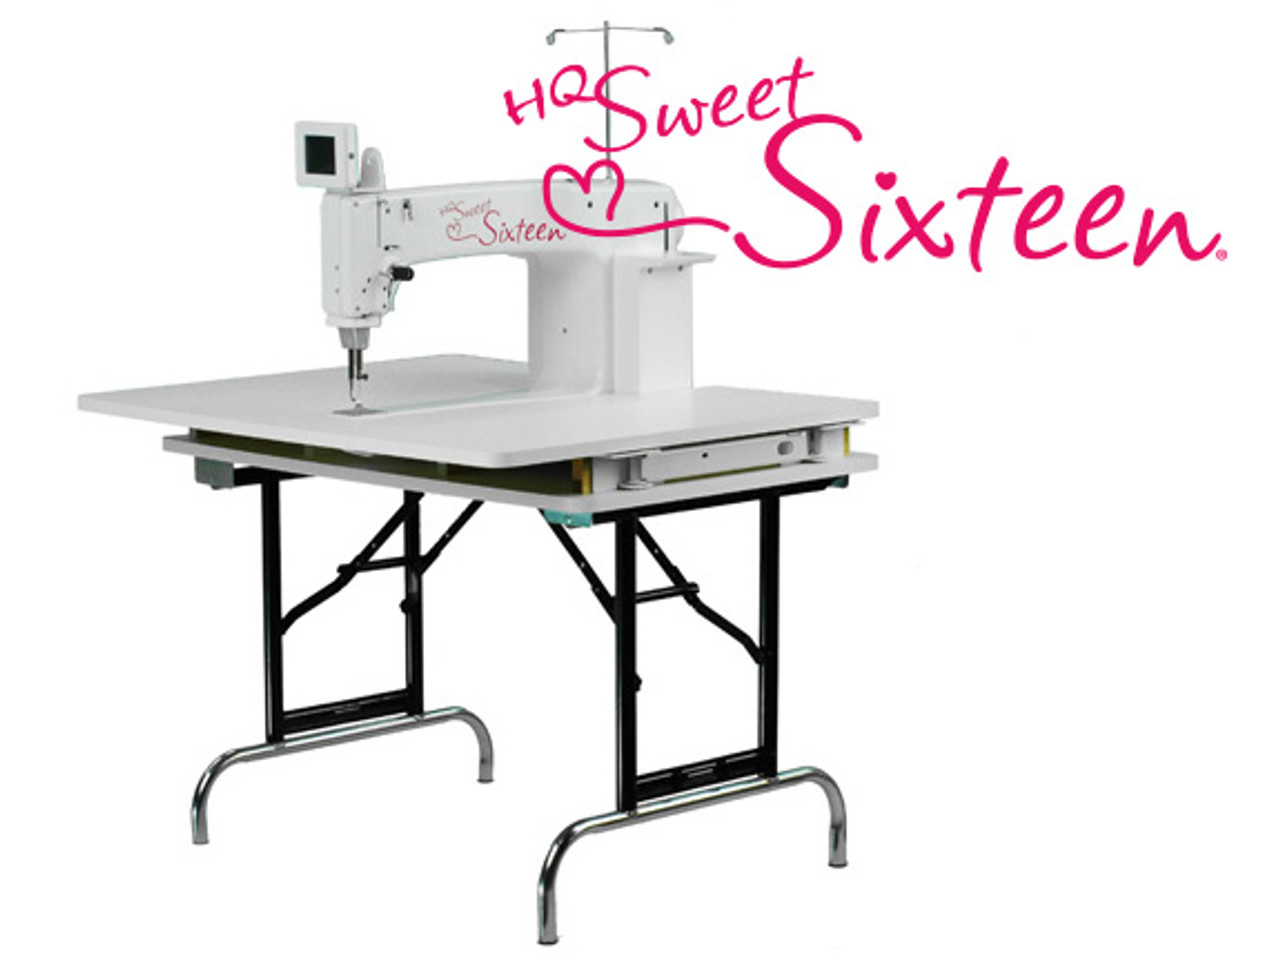 Handi Quilter Sweet Sixteen And Insight Table